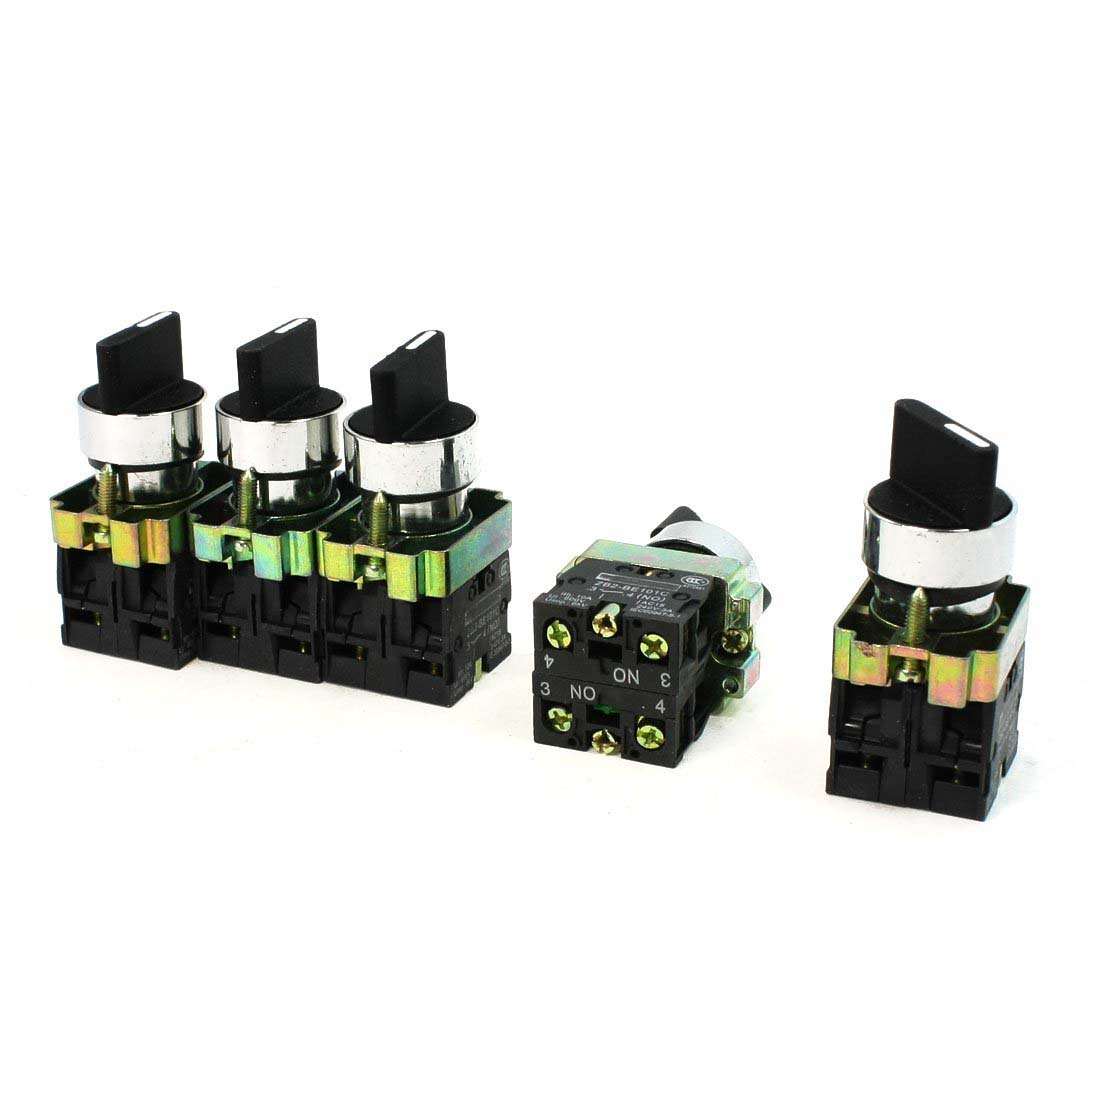 10A Ith 600V Ui Lug Control 4 Terminal 3 Position DPST 2NO Rotary Switch 5Pcs 660v ui 10a ith 8 terminals rotary cam universal changeover combination switch